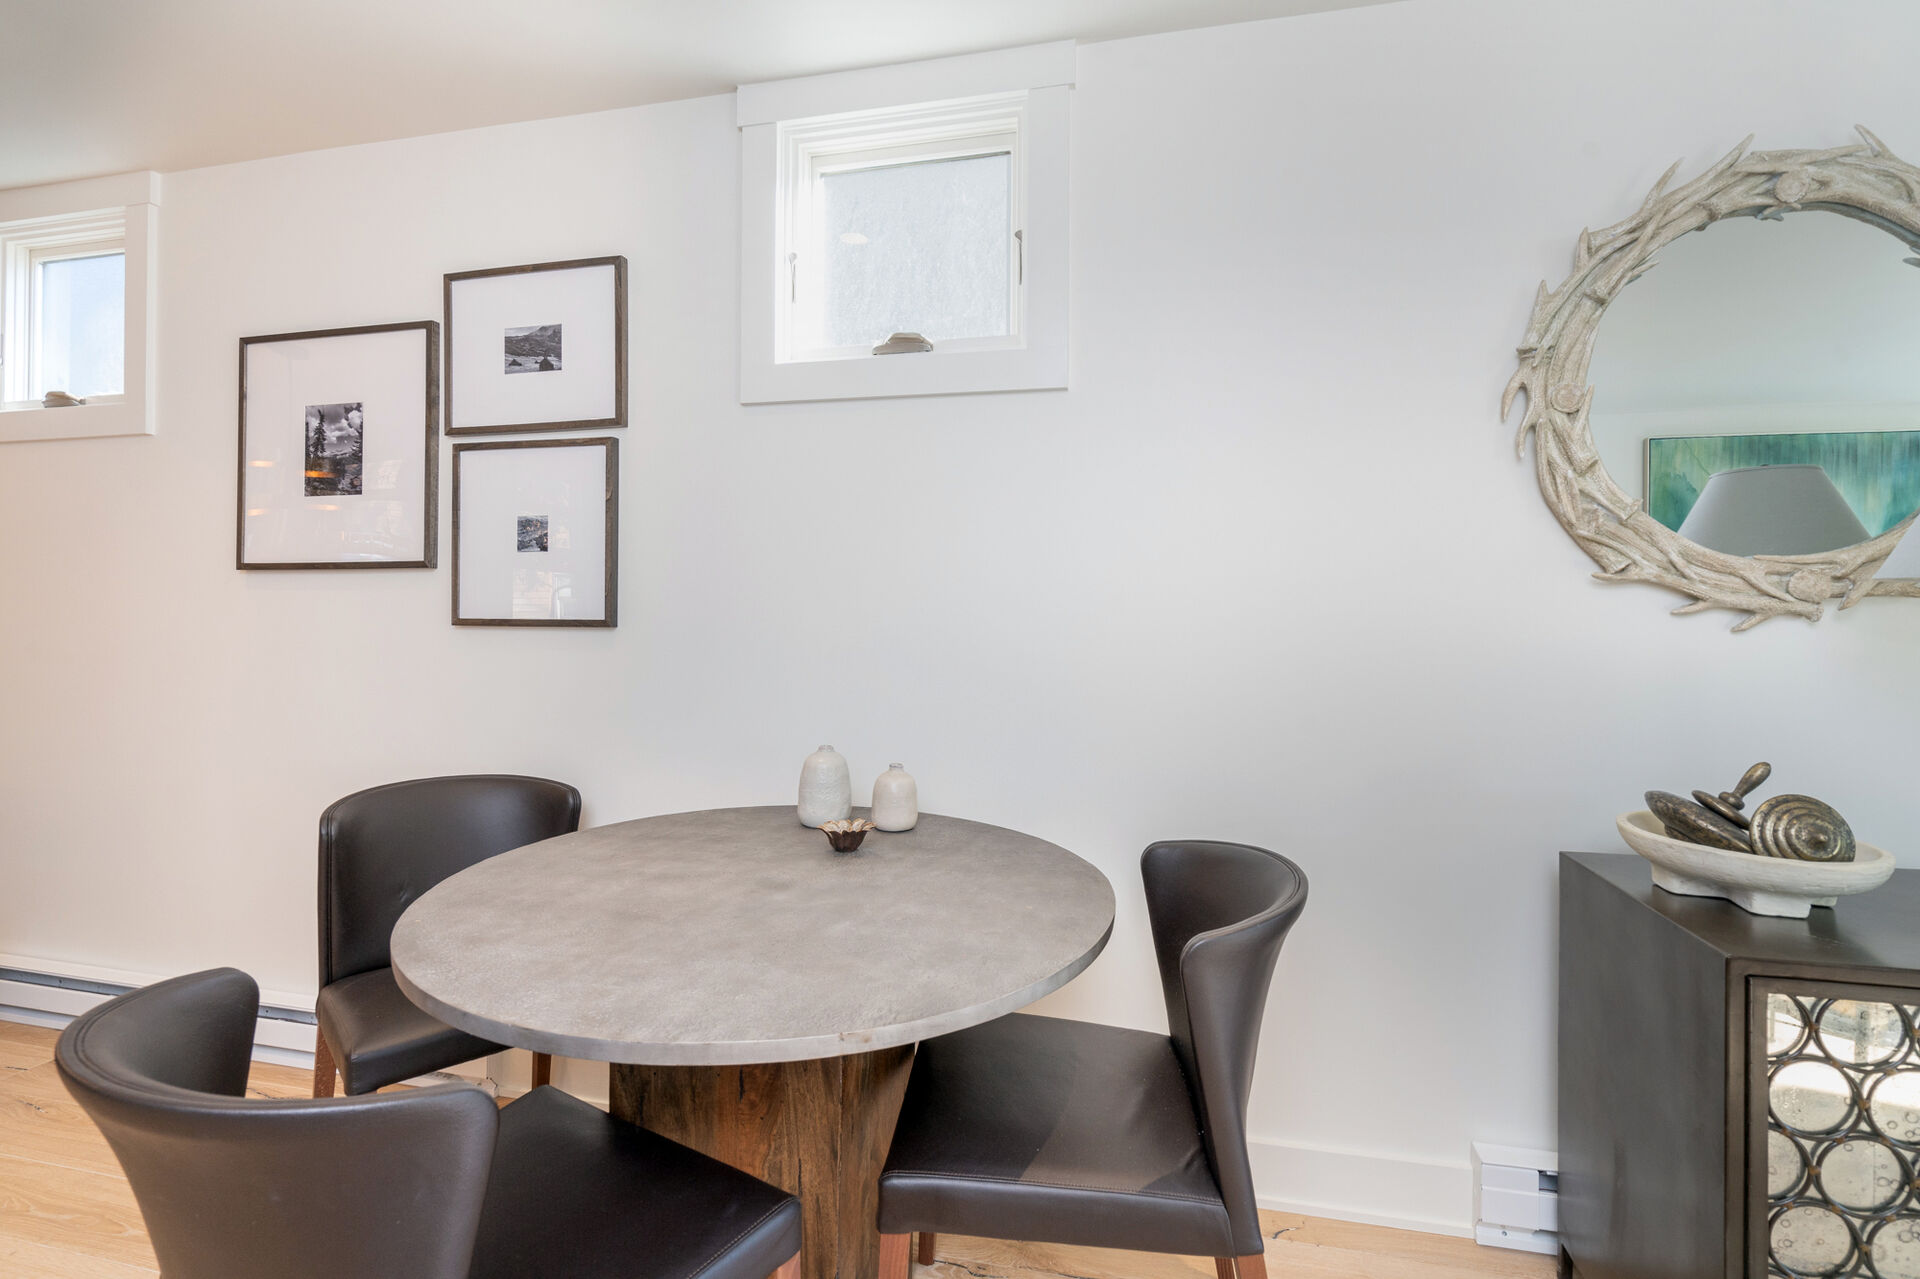 Small dining area seating 3